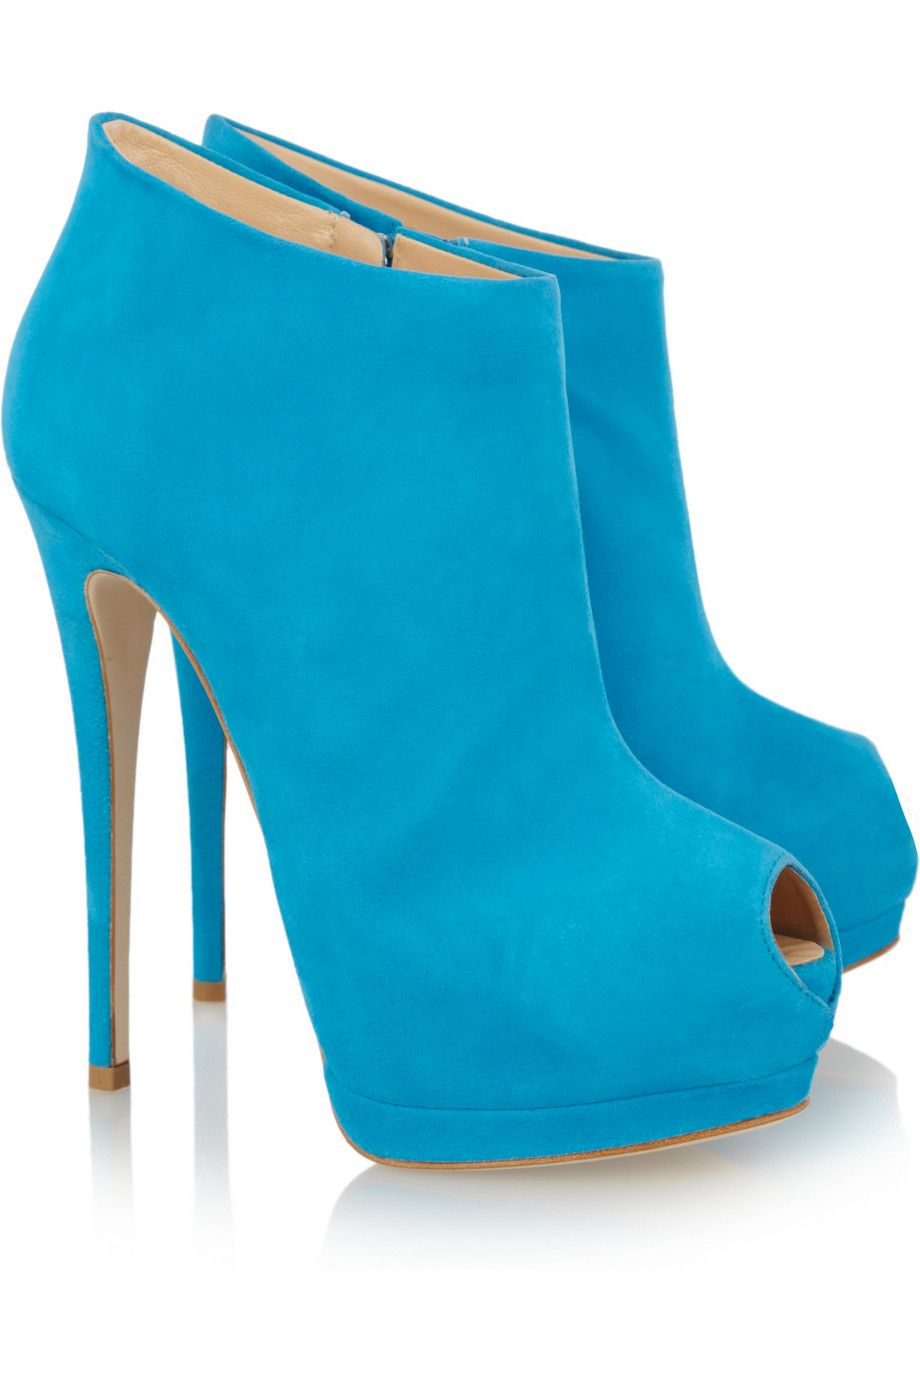 Giuseppe Zanotti Suede peep-toe platform ankle boots This Color is Amazing!